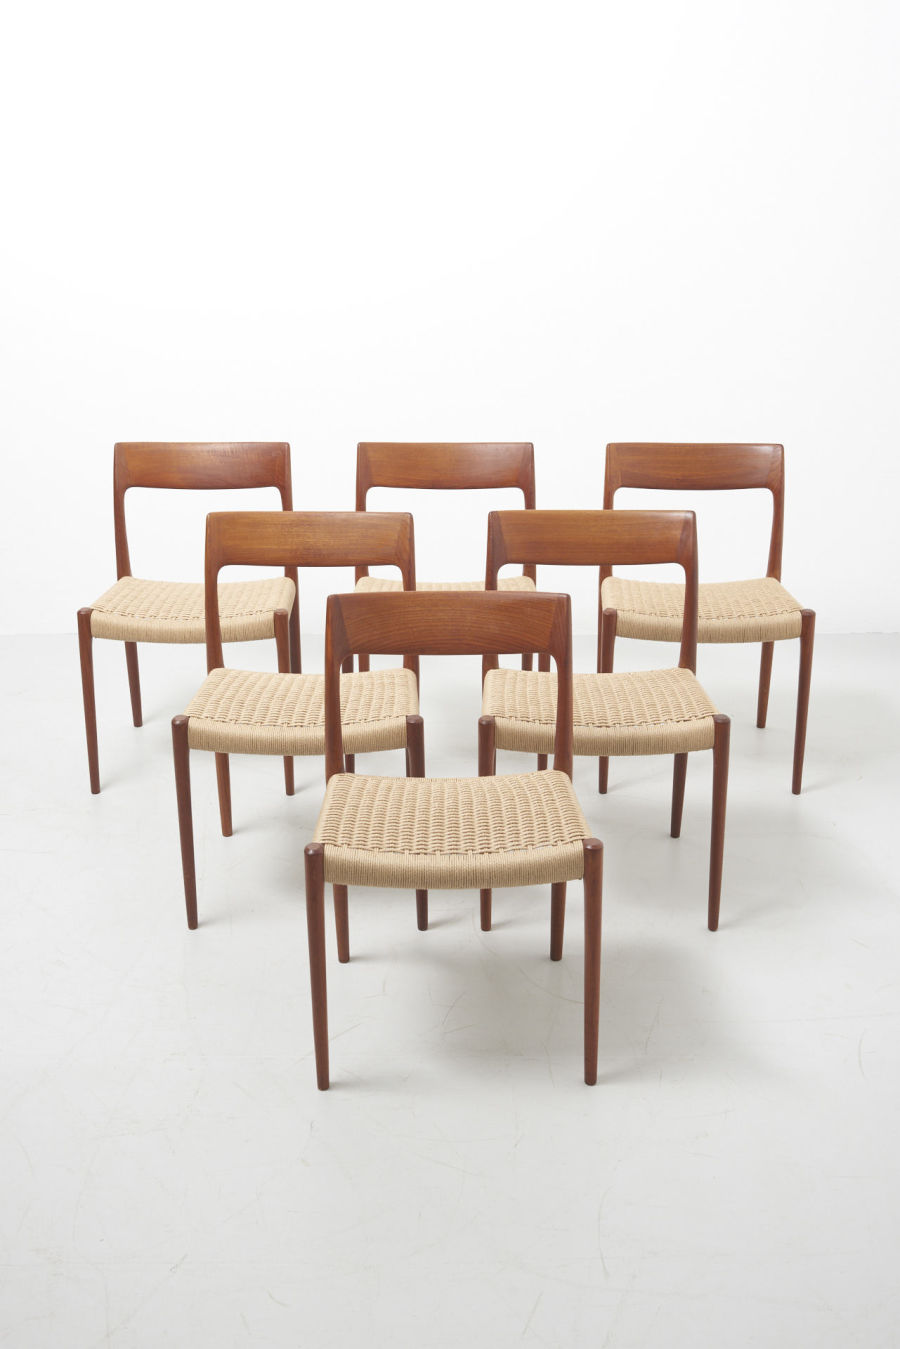 modestfurniture-vintage-2469-niels-moller-dining-chairs-model-77-teak-papercord01